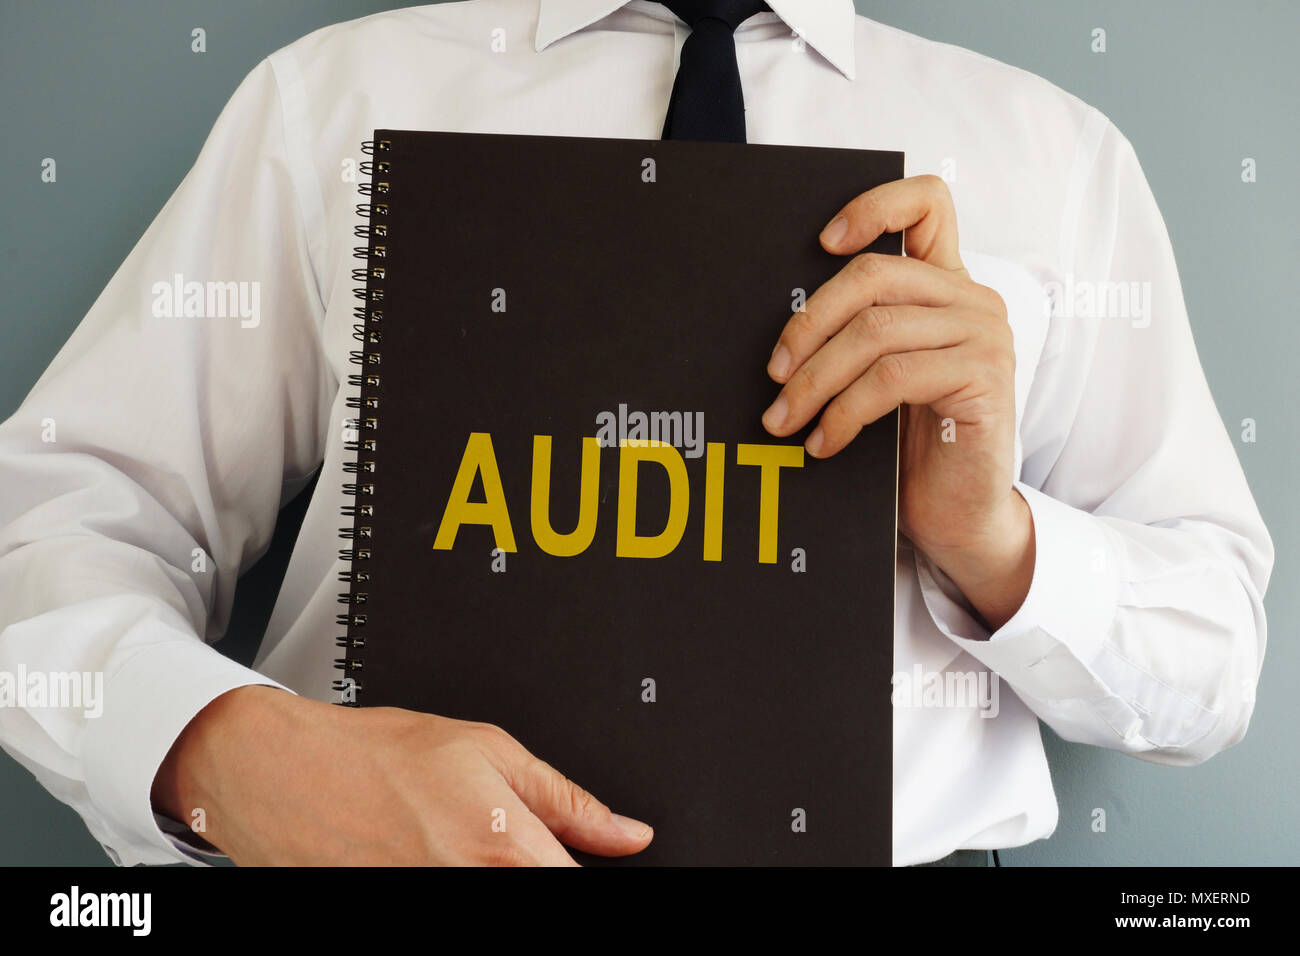 Audit concept. Auditor is holding book. - Stock Image